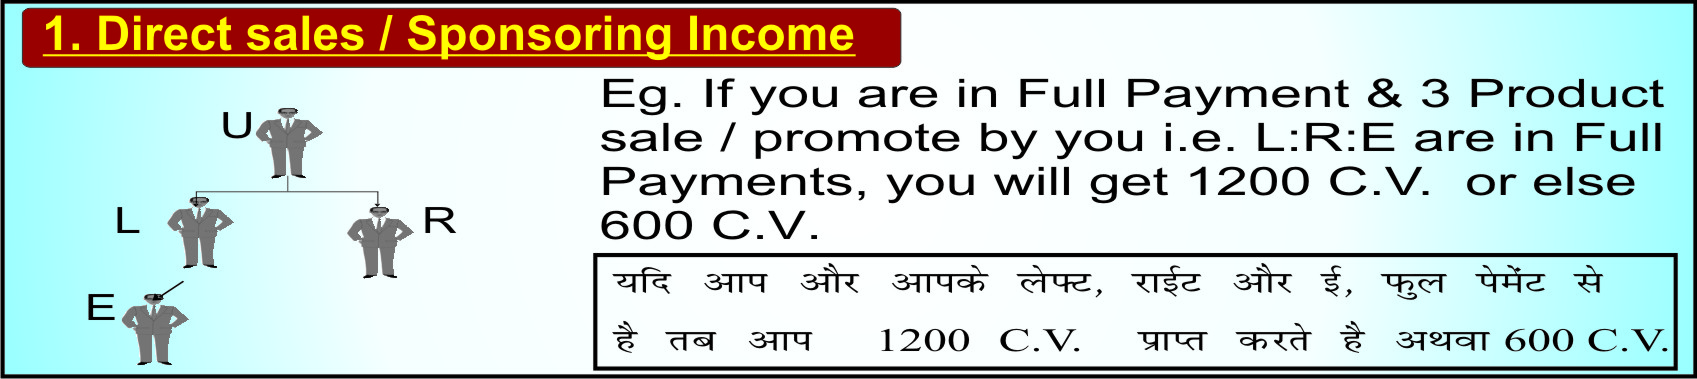 2 Pair Income